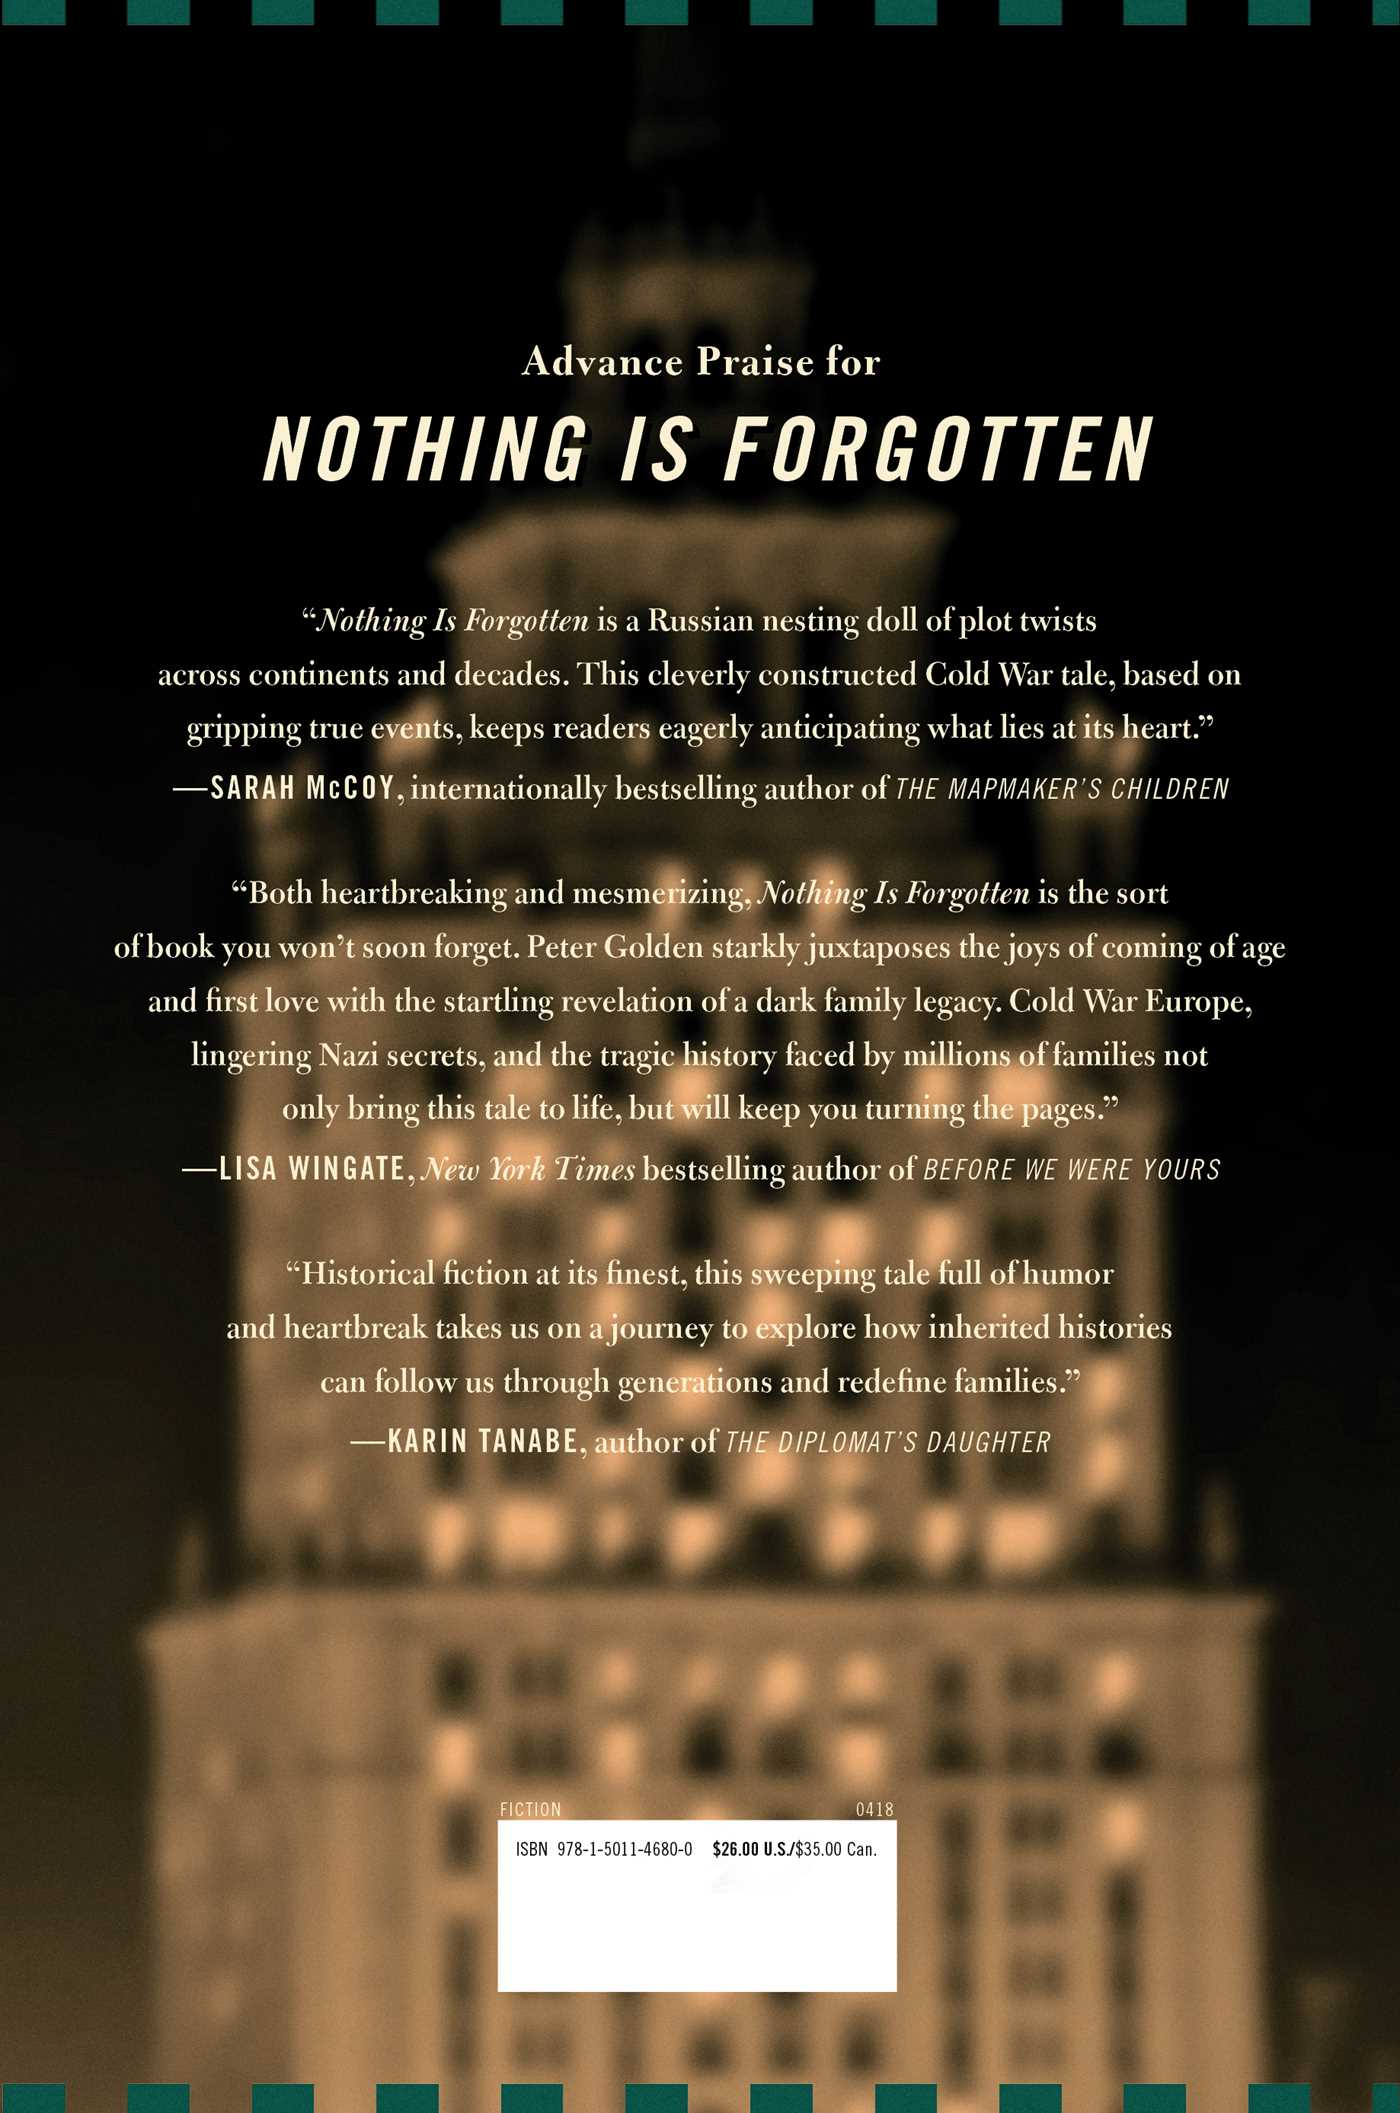 Nothing is forgotten 9781501146800 hr back